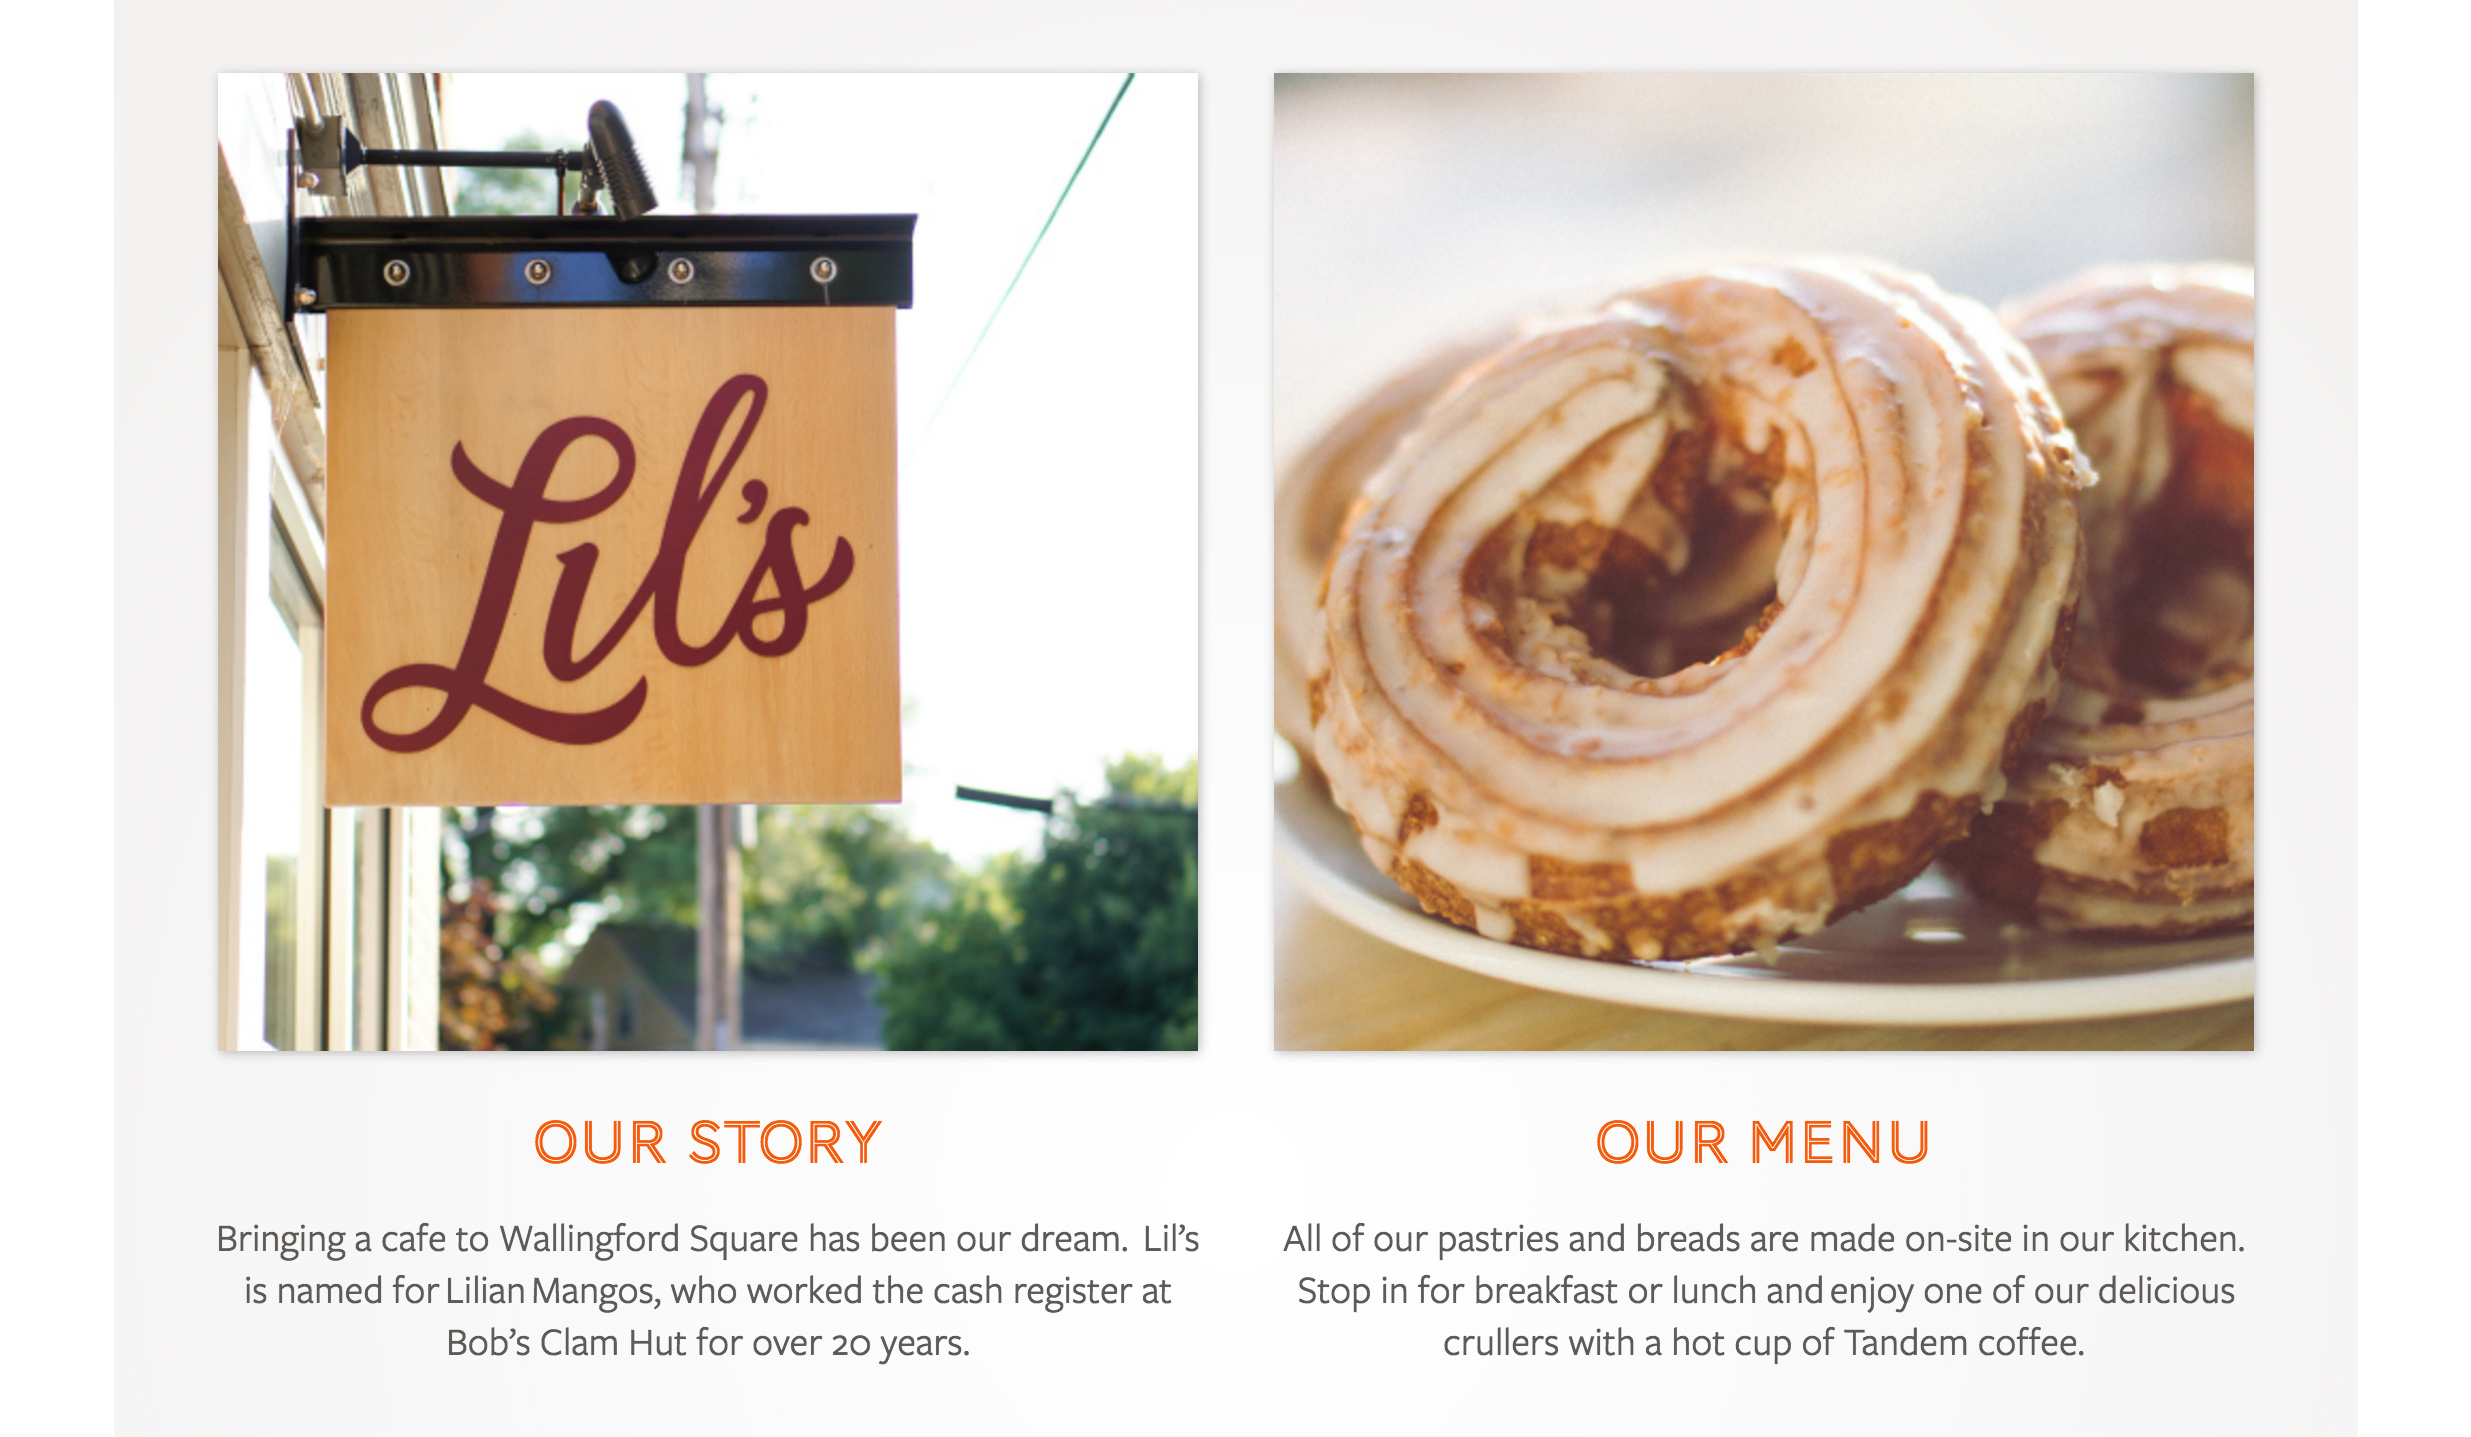 Lil's Cafe homepage scroll down after